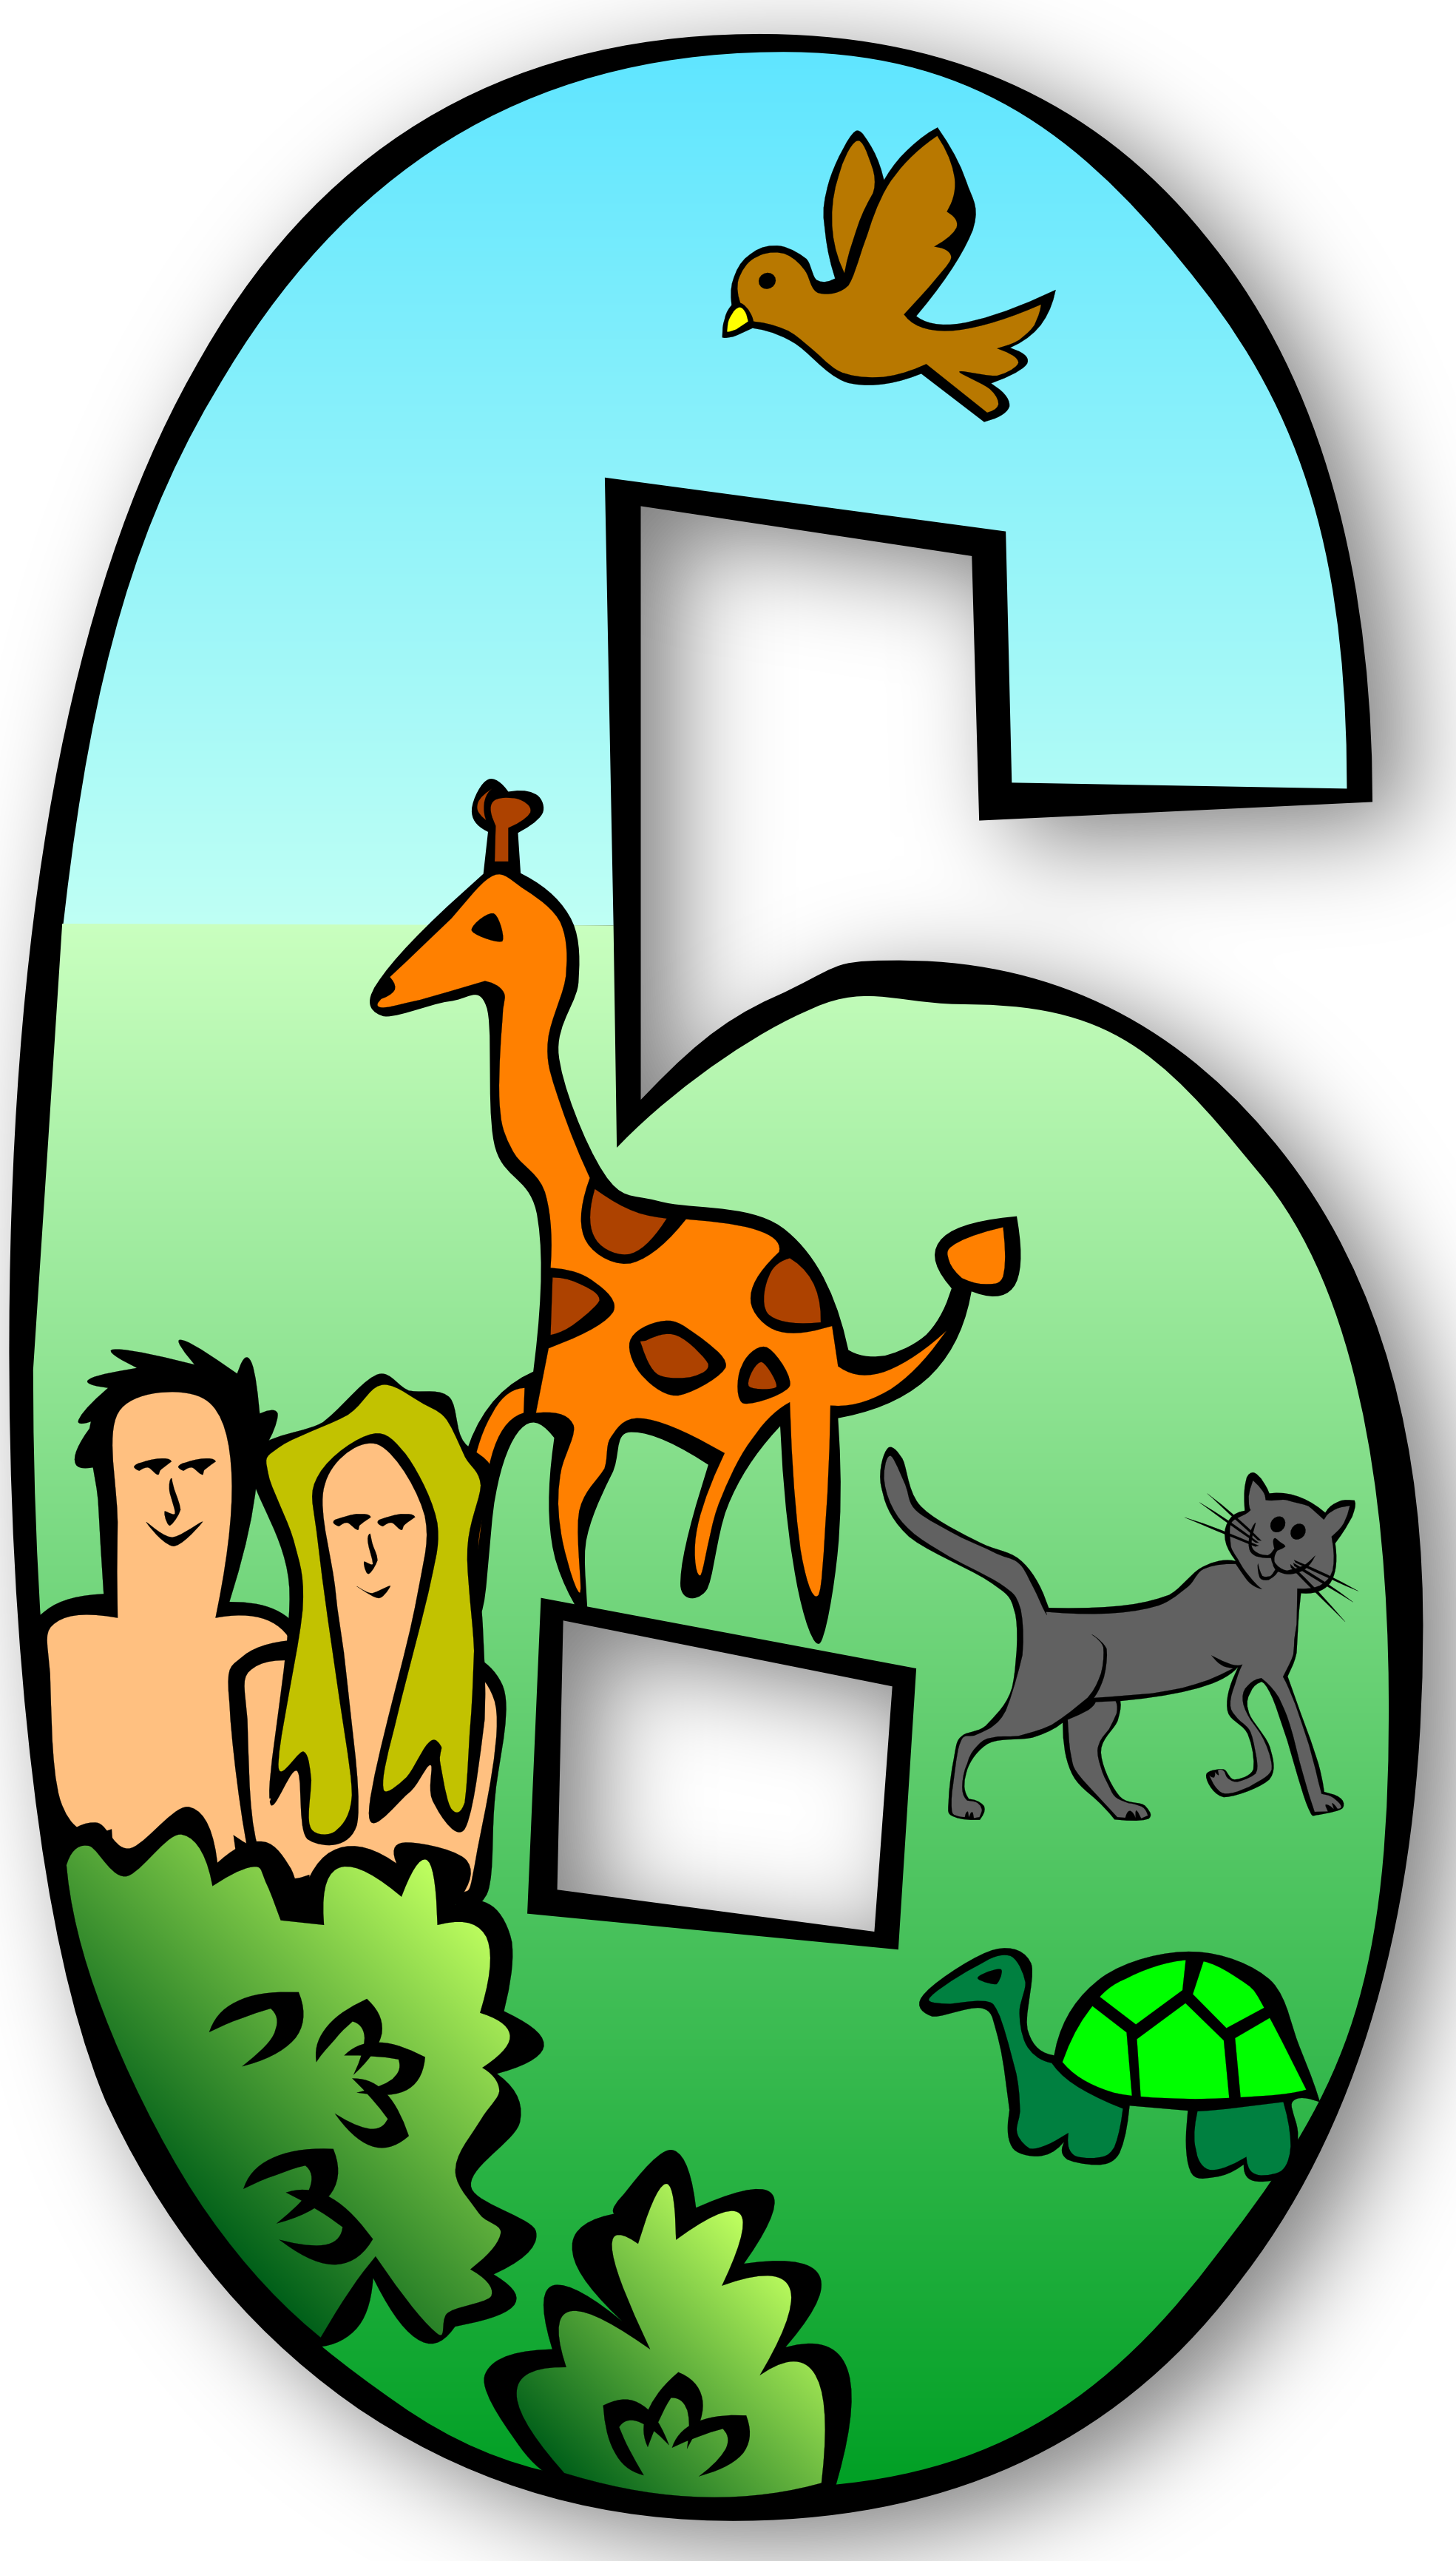 graphic freeuse download Action clipart library time. Free pics of numbers